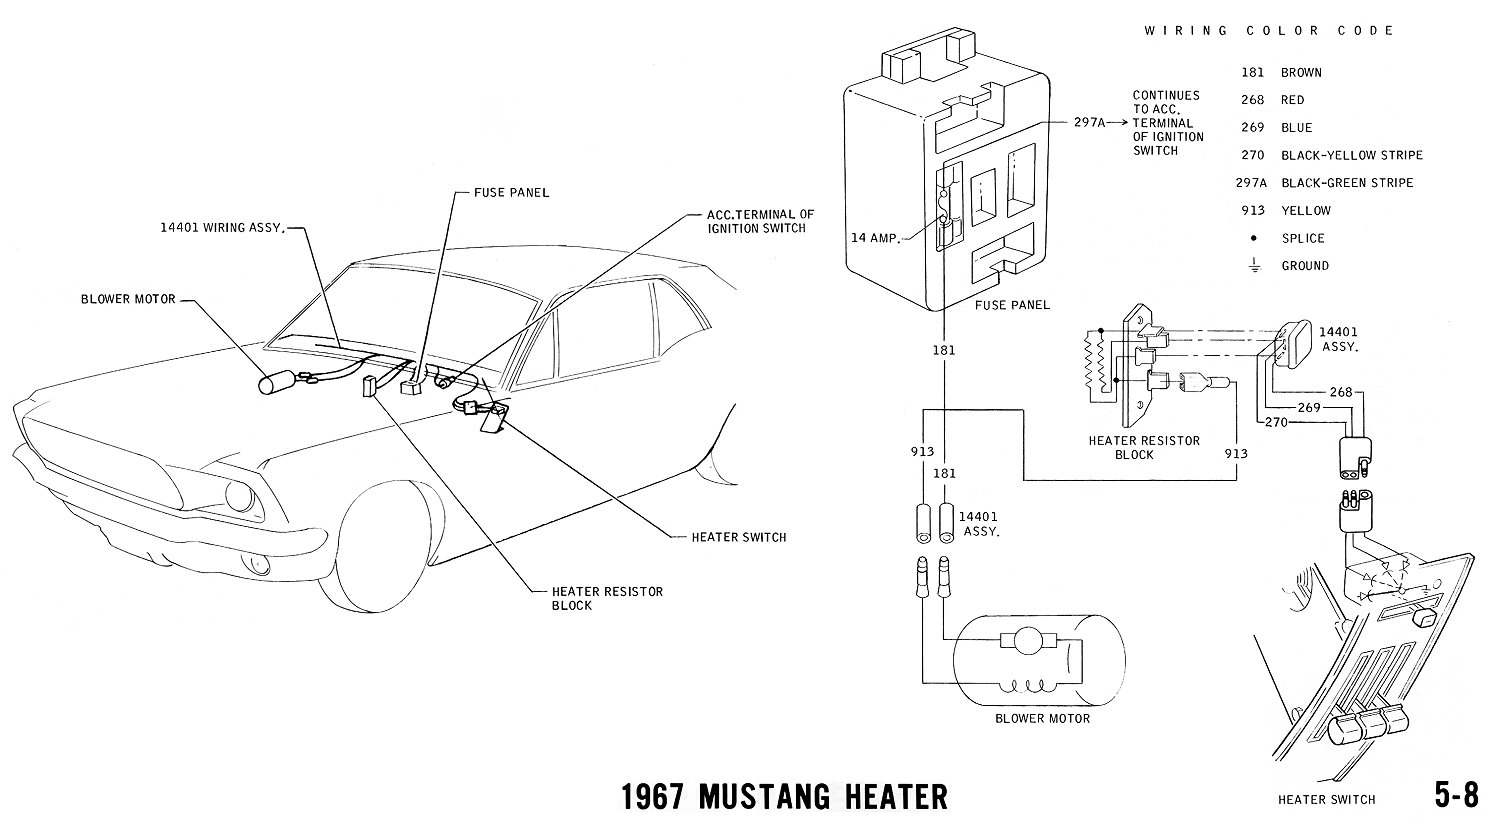 67heater 1967 mustang wiring and vacuum diagrams average joe restoration 66 mustang fuse box diagram at creativeand.co